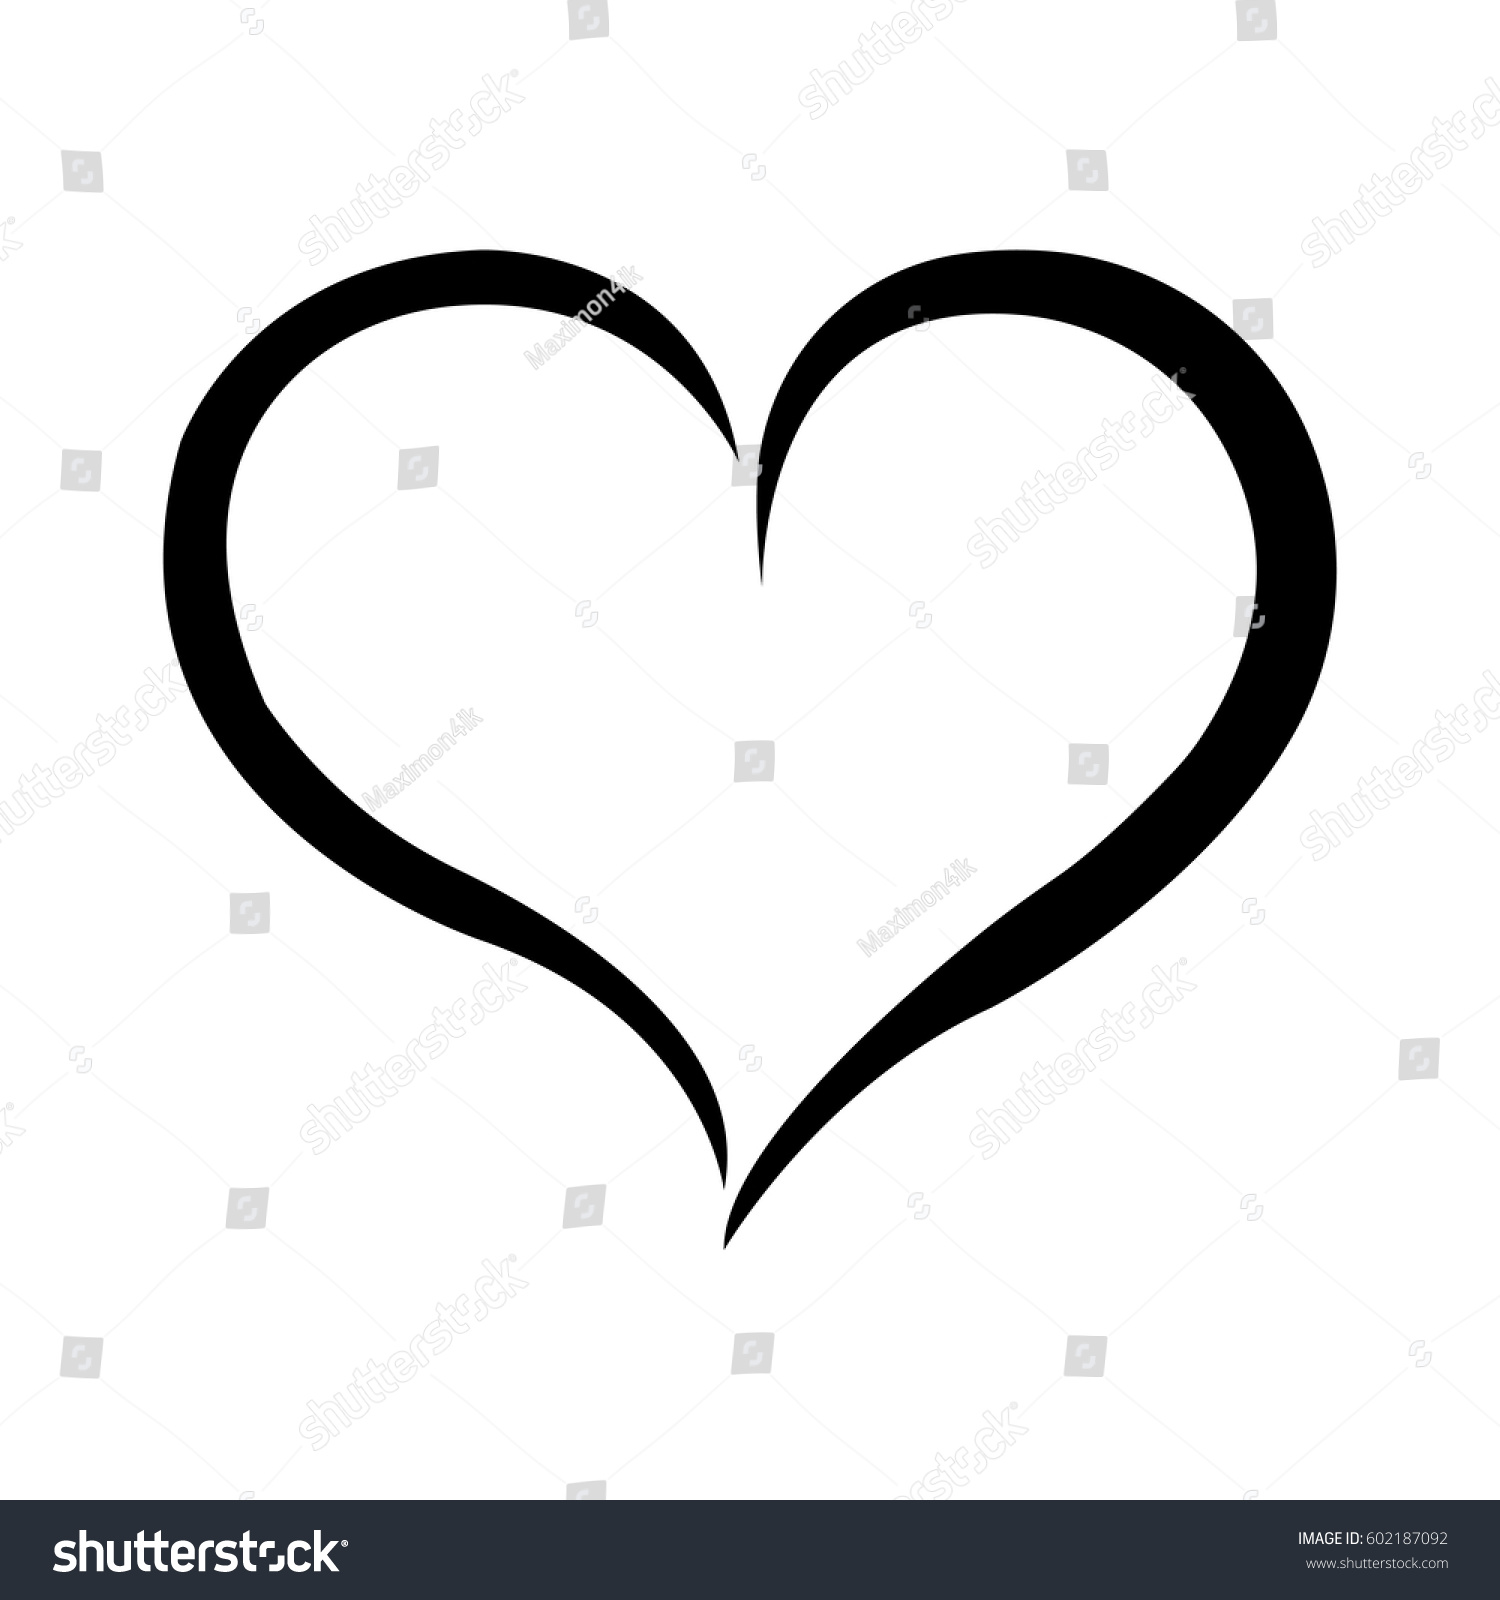 Hand drawn heart vector calligraphy stock